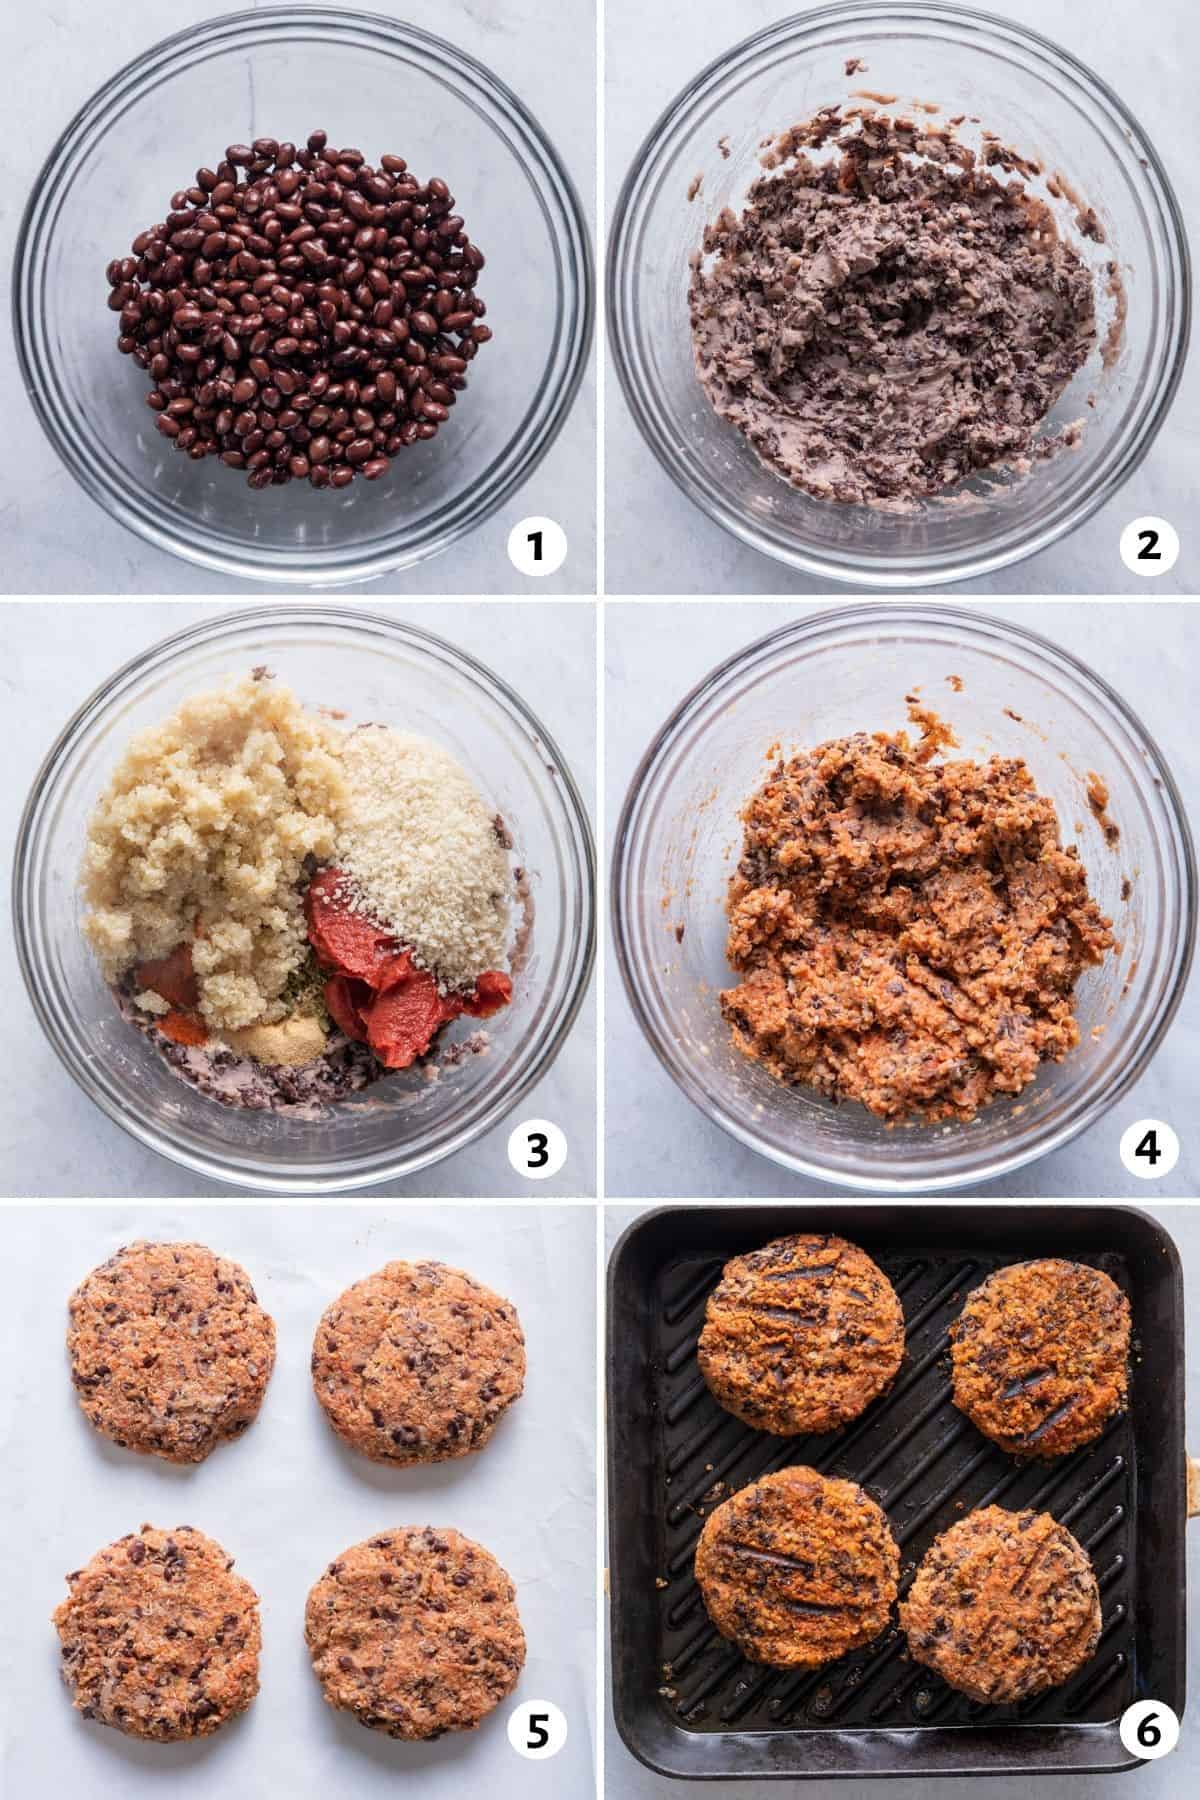 6 image collage to show how to mash the beans, mix with the other ingredients, form patties and cook the patties on a skillet